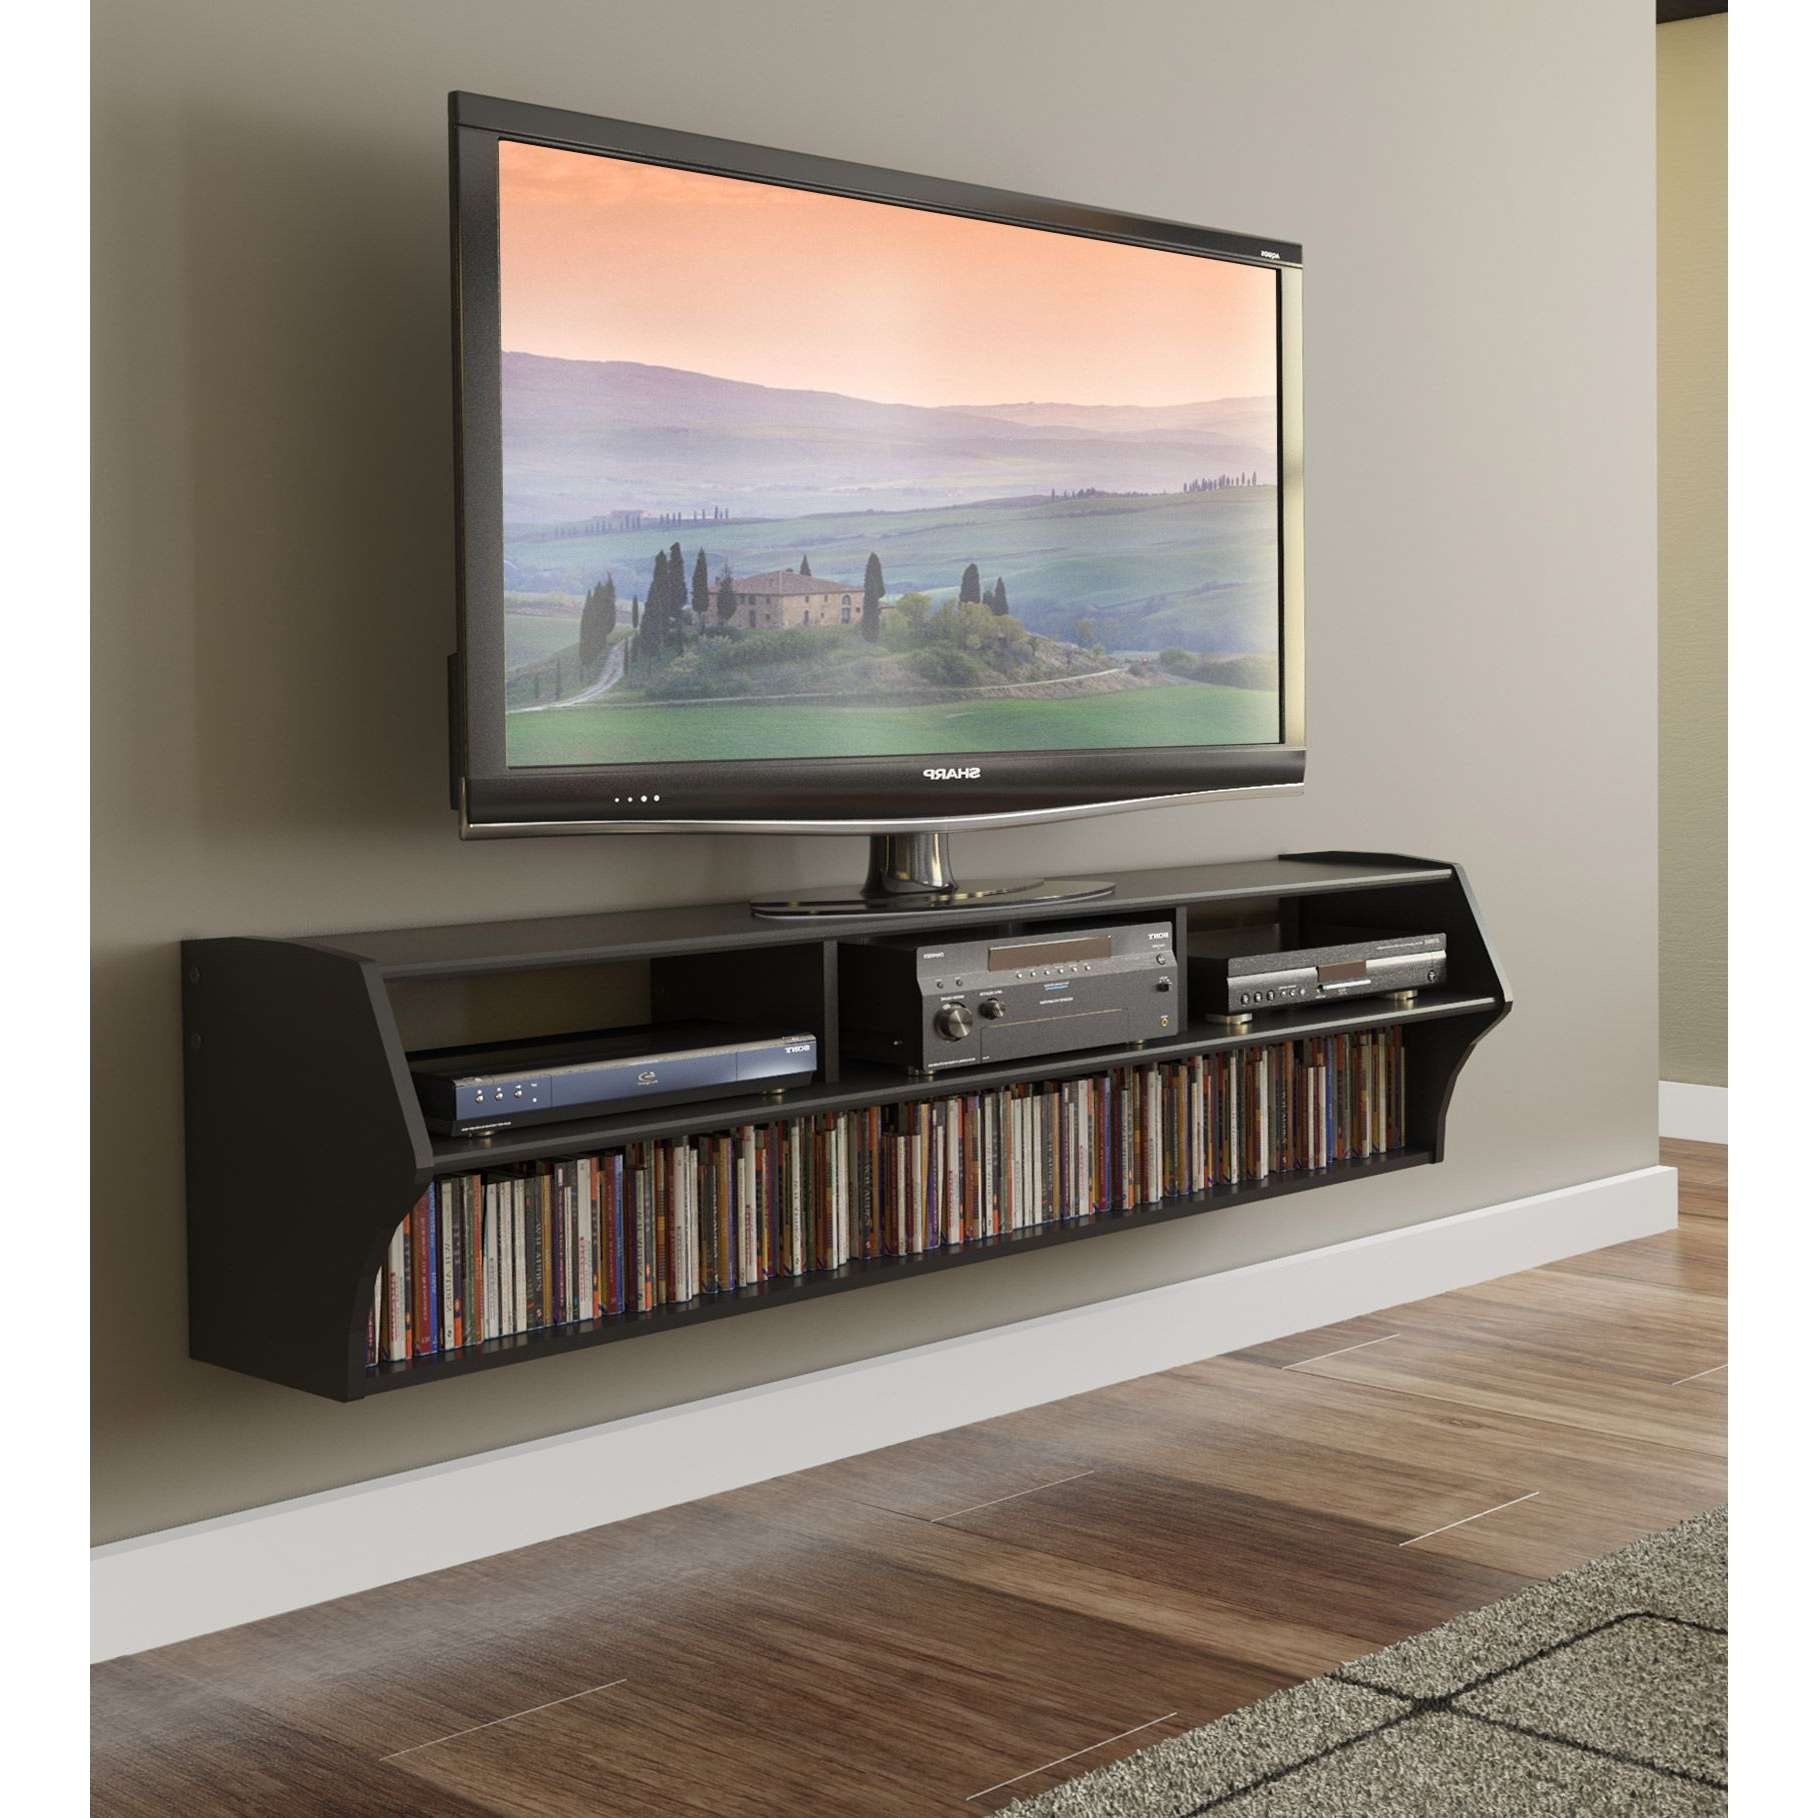 Wall Mounted Tv Entertainment Center Enchanting On Home Decors For Within Wall Mounted Tv Stands For Flat Screens (View 14 of 15)